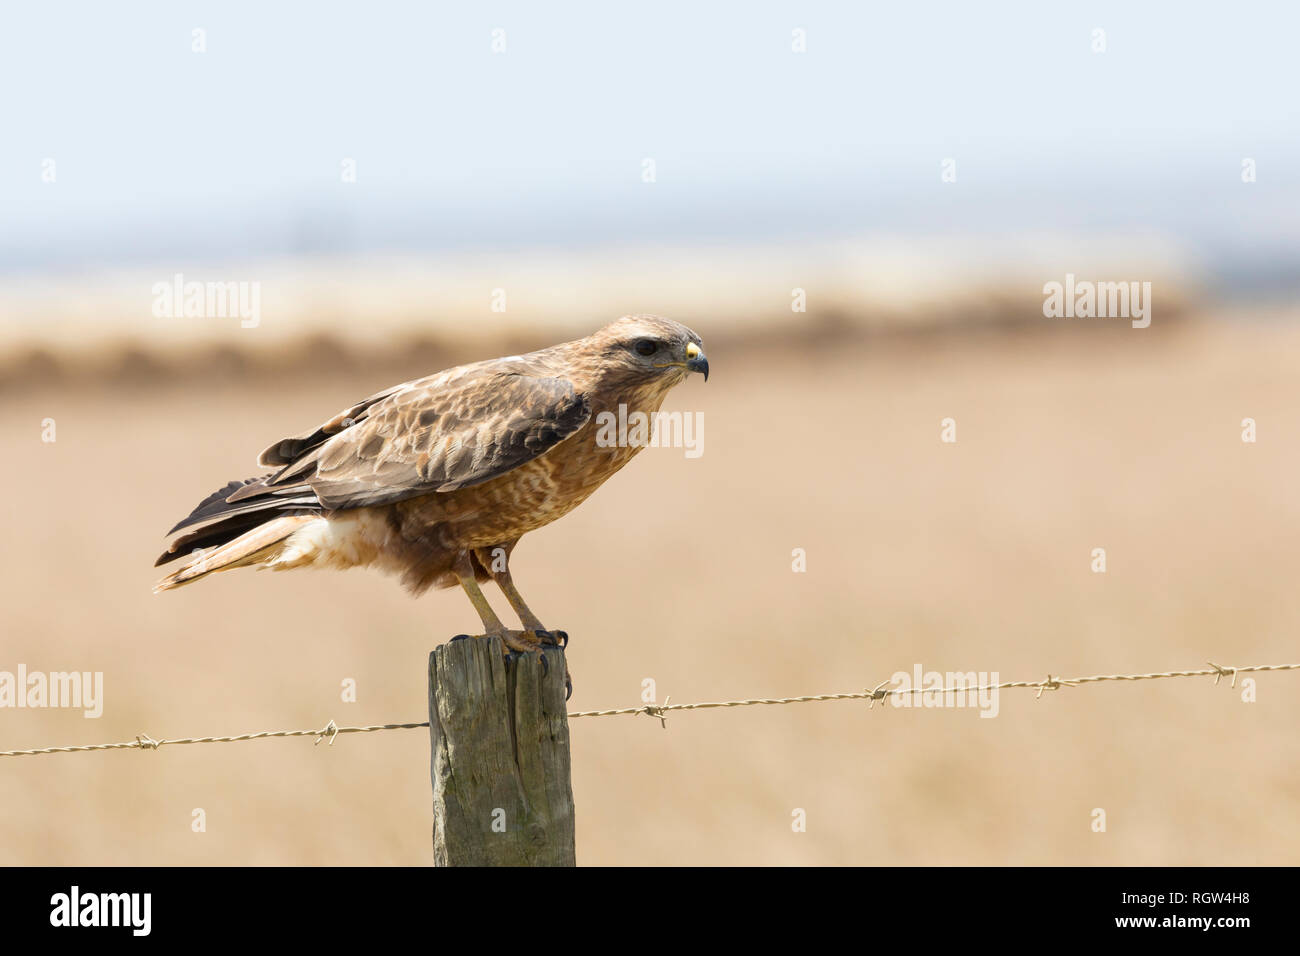 Common Buzzard or Steppe Buzzard, Buteo buteo vulpinus, on a fence post  on farmland in Western Cape,  South Africa. Common migratory summer visitor - Stock Image